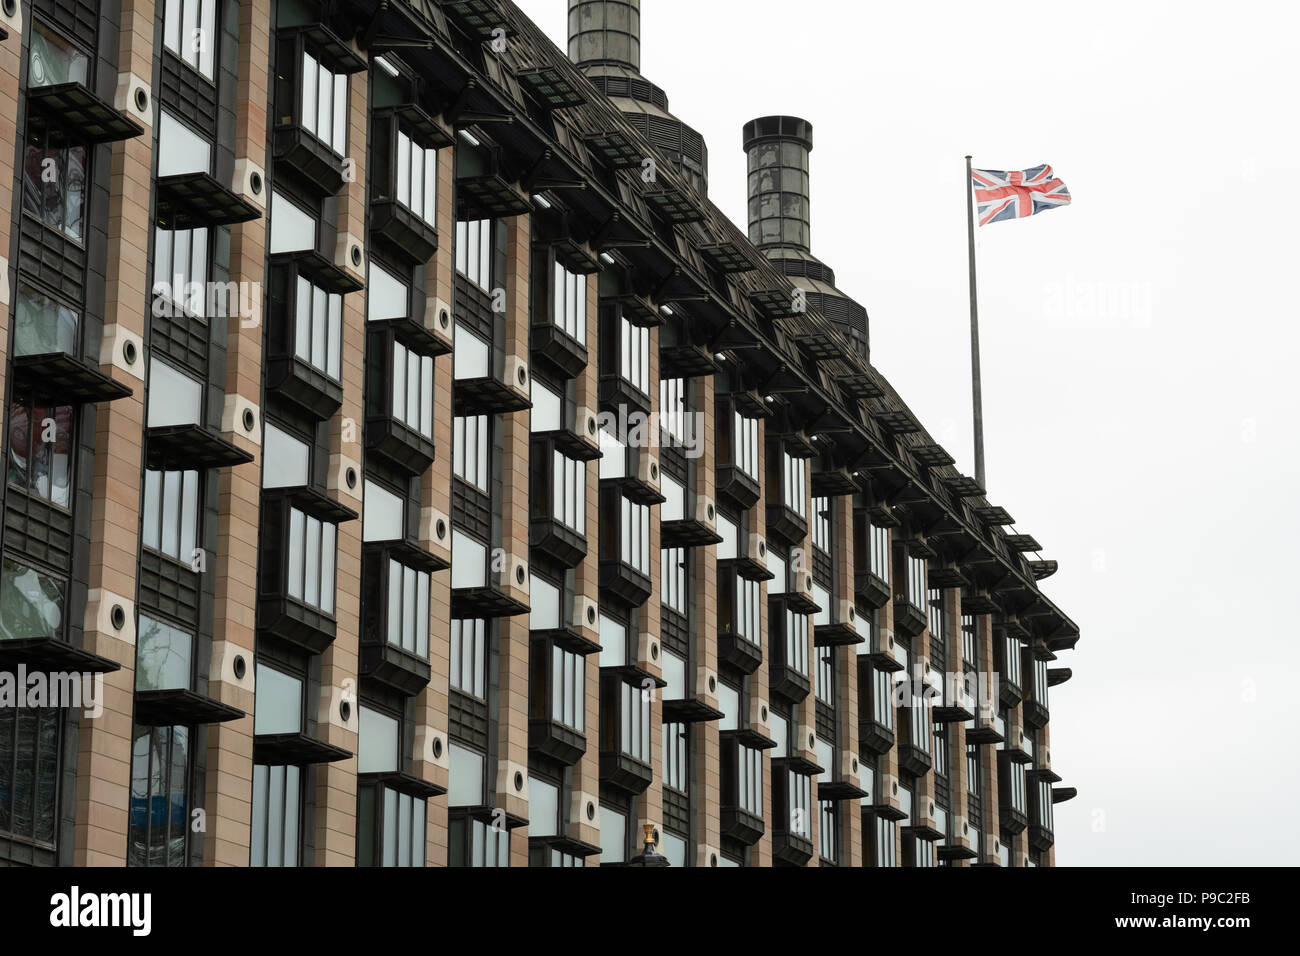 Portcullis house rooftop and Union Jack flag - Stock Image